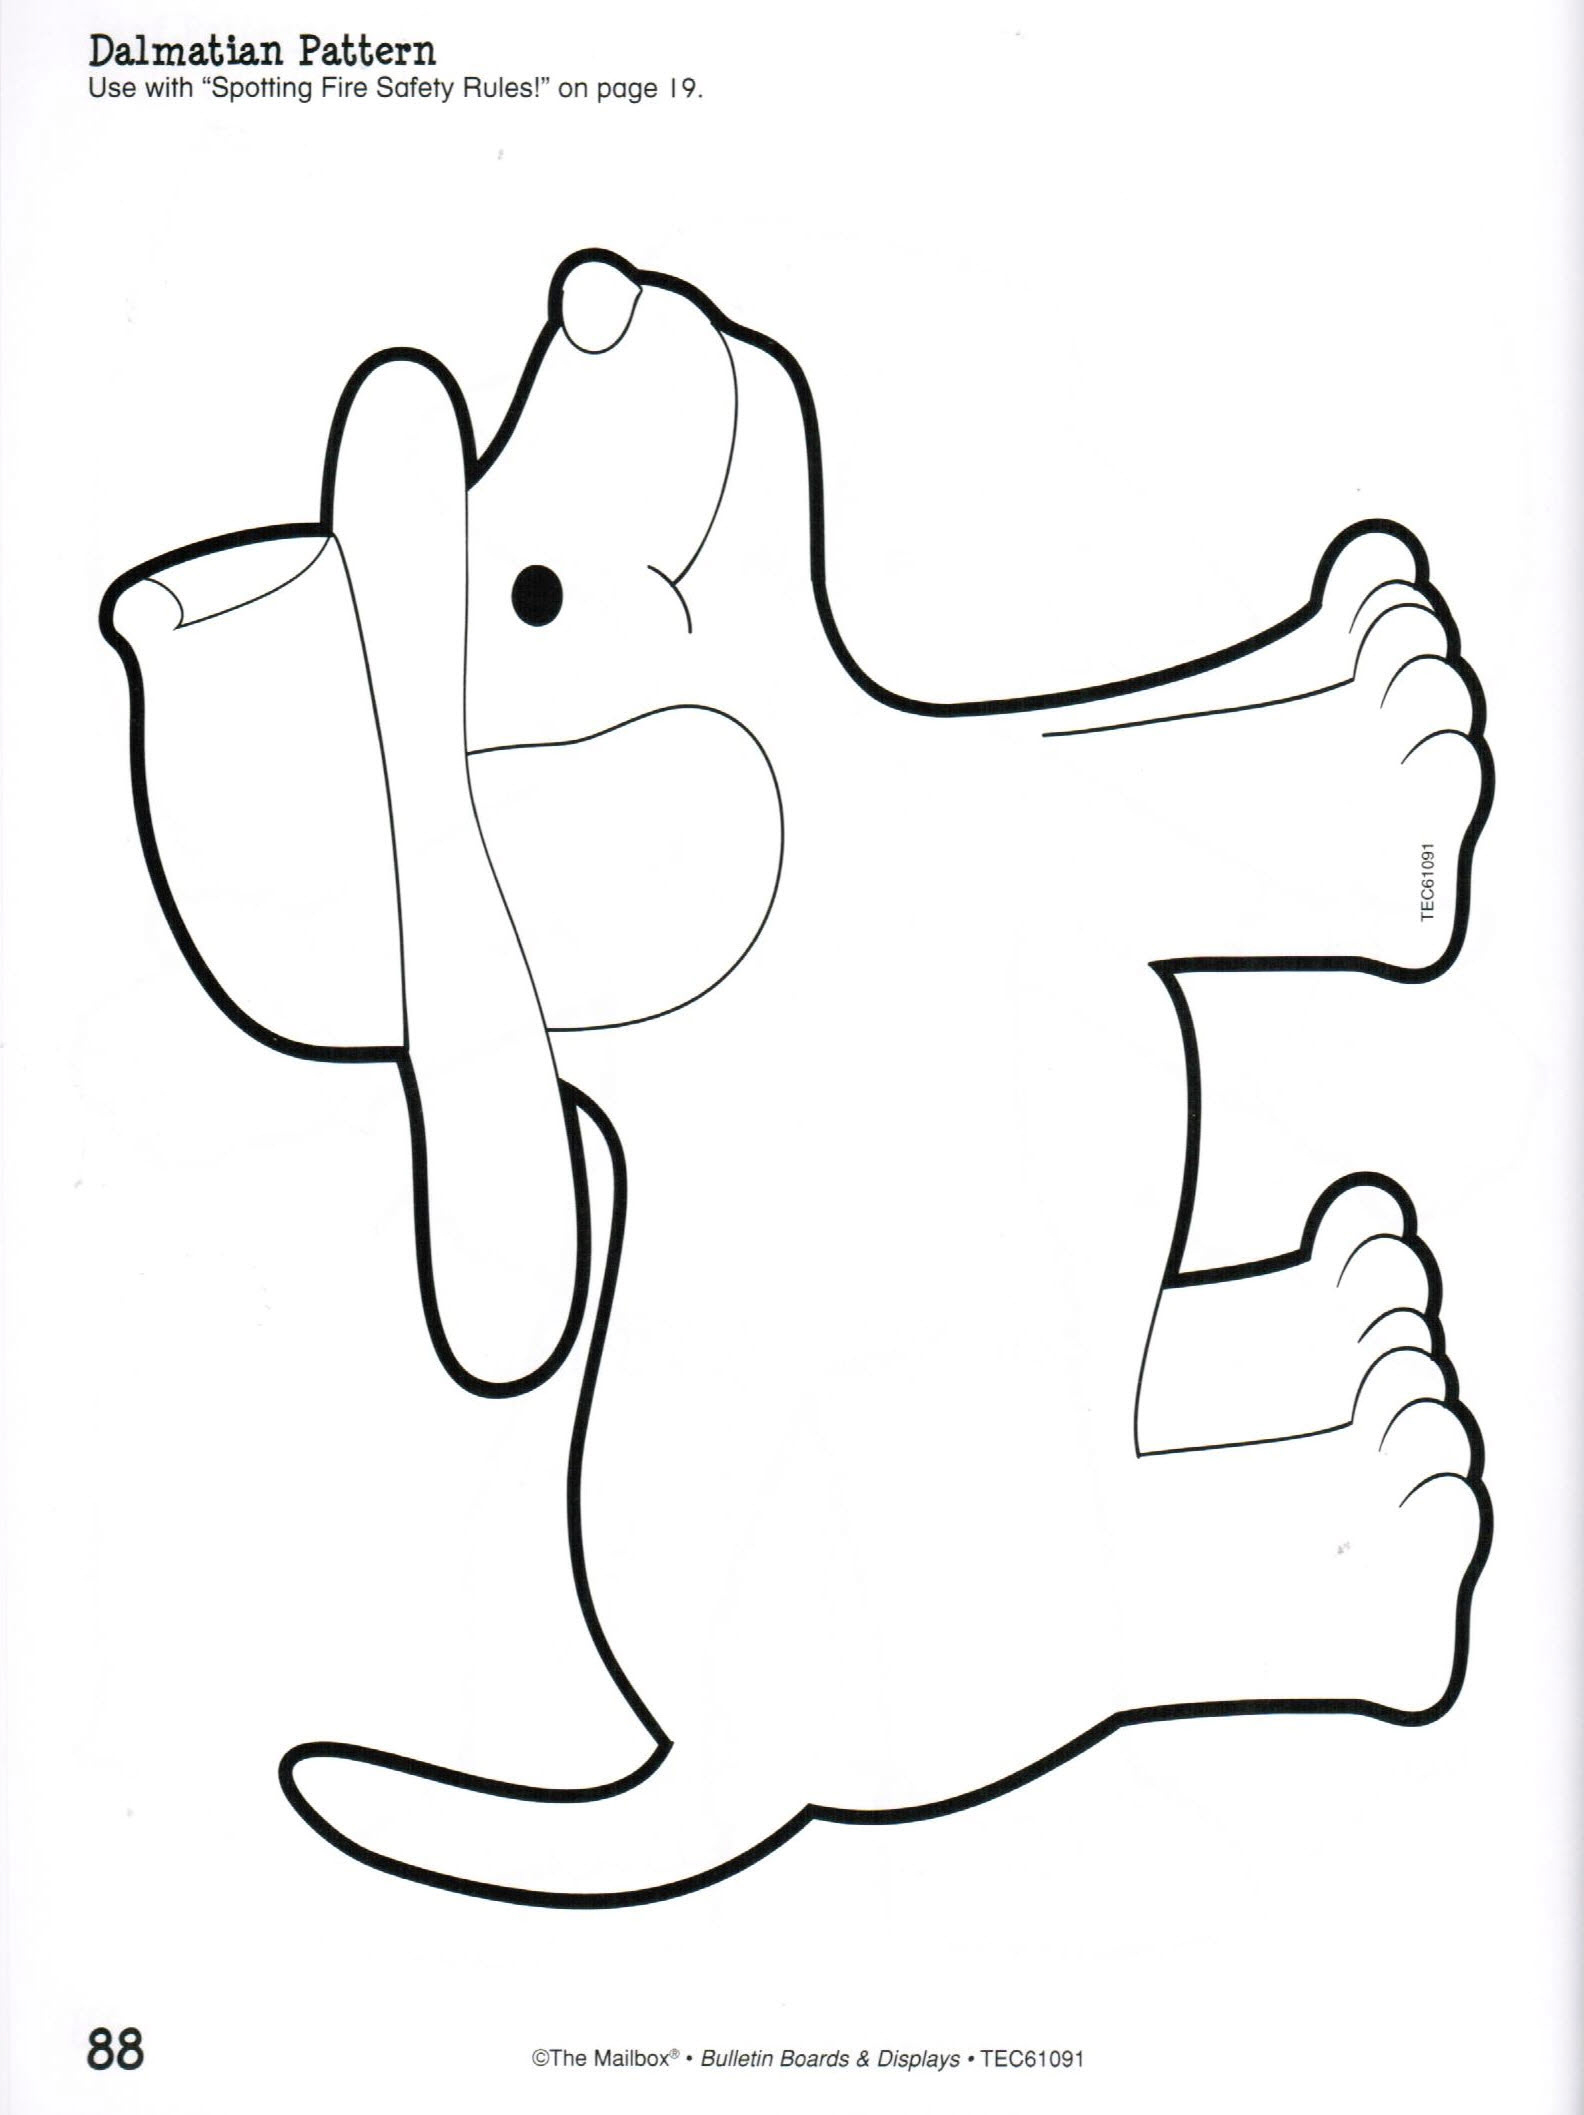 dalmatian fire dog coloring pages - 5 best images of fire dog printable for preschool fire